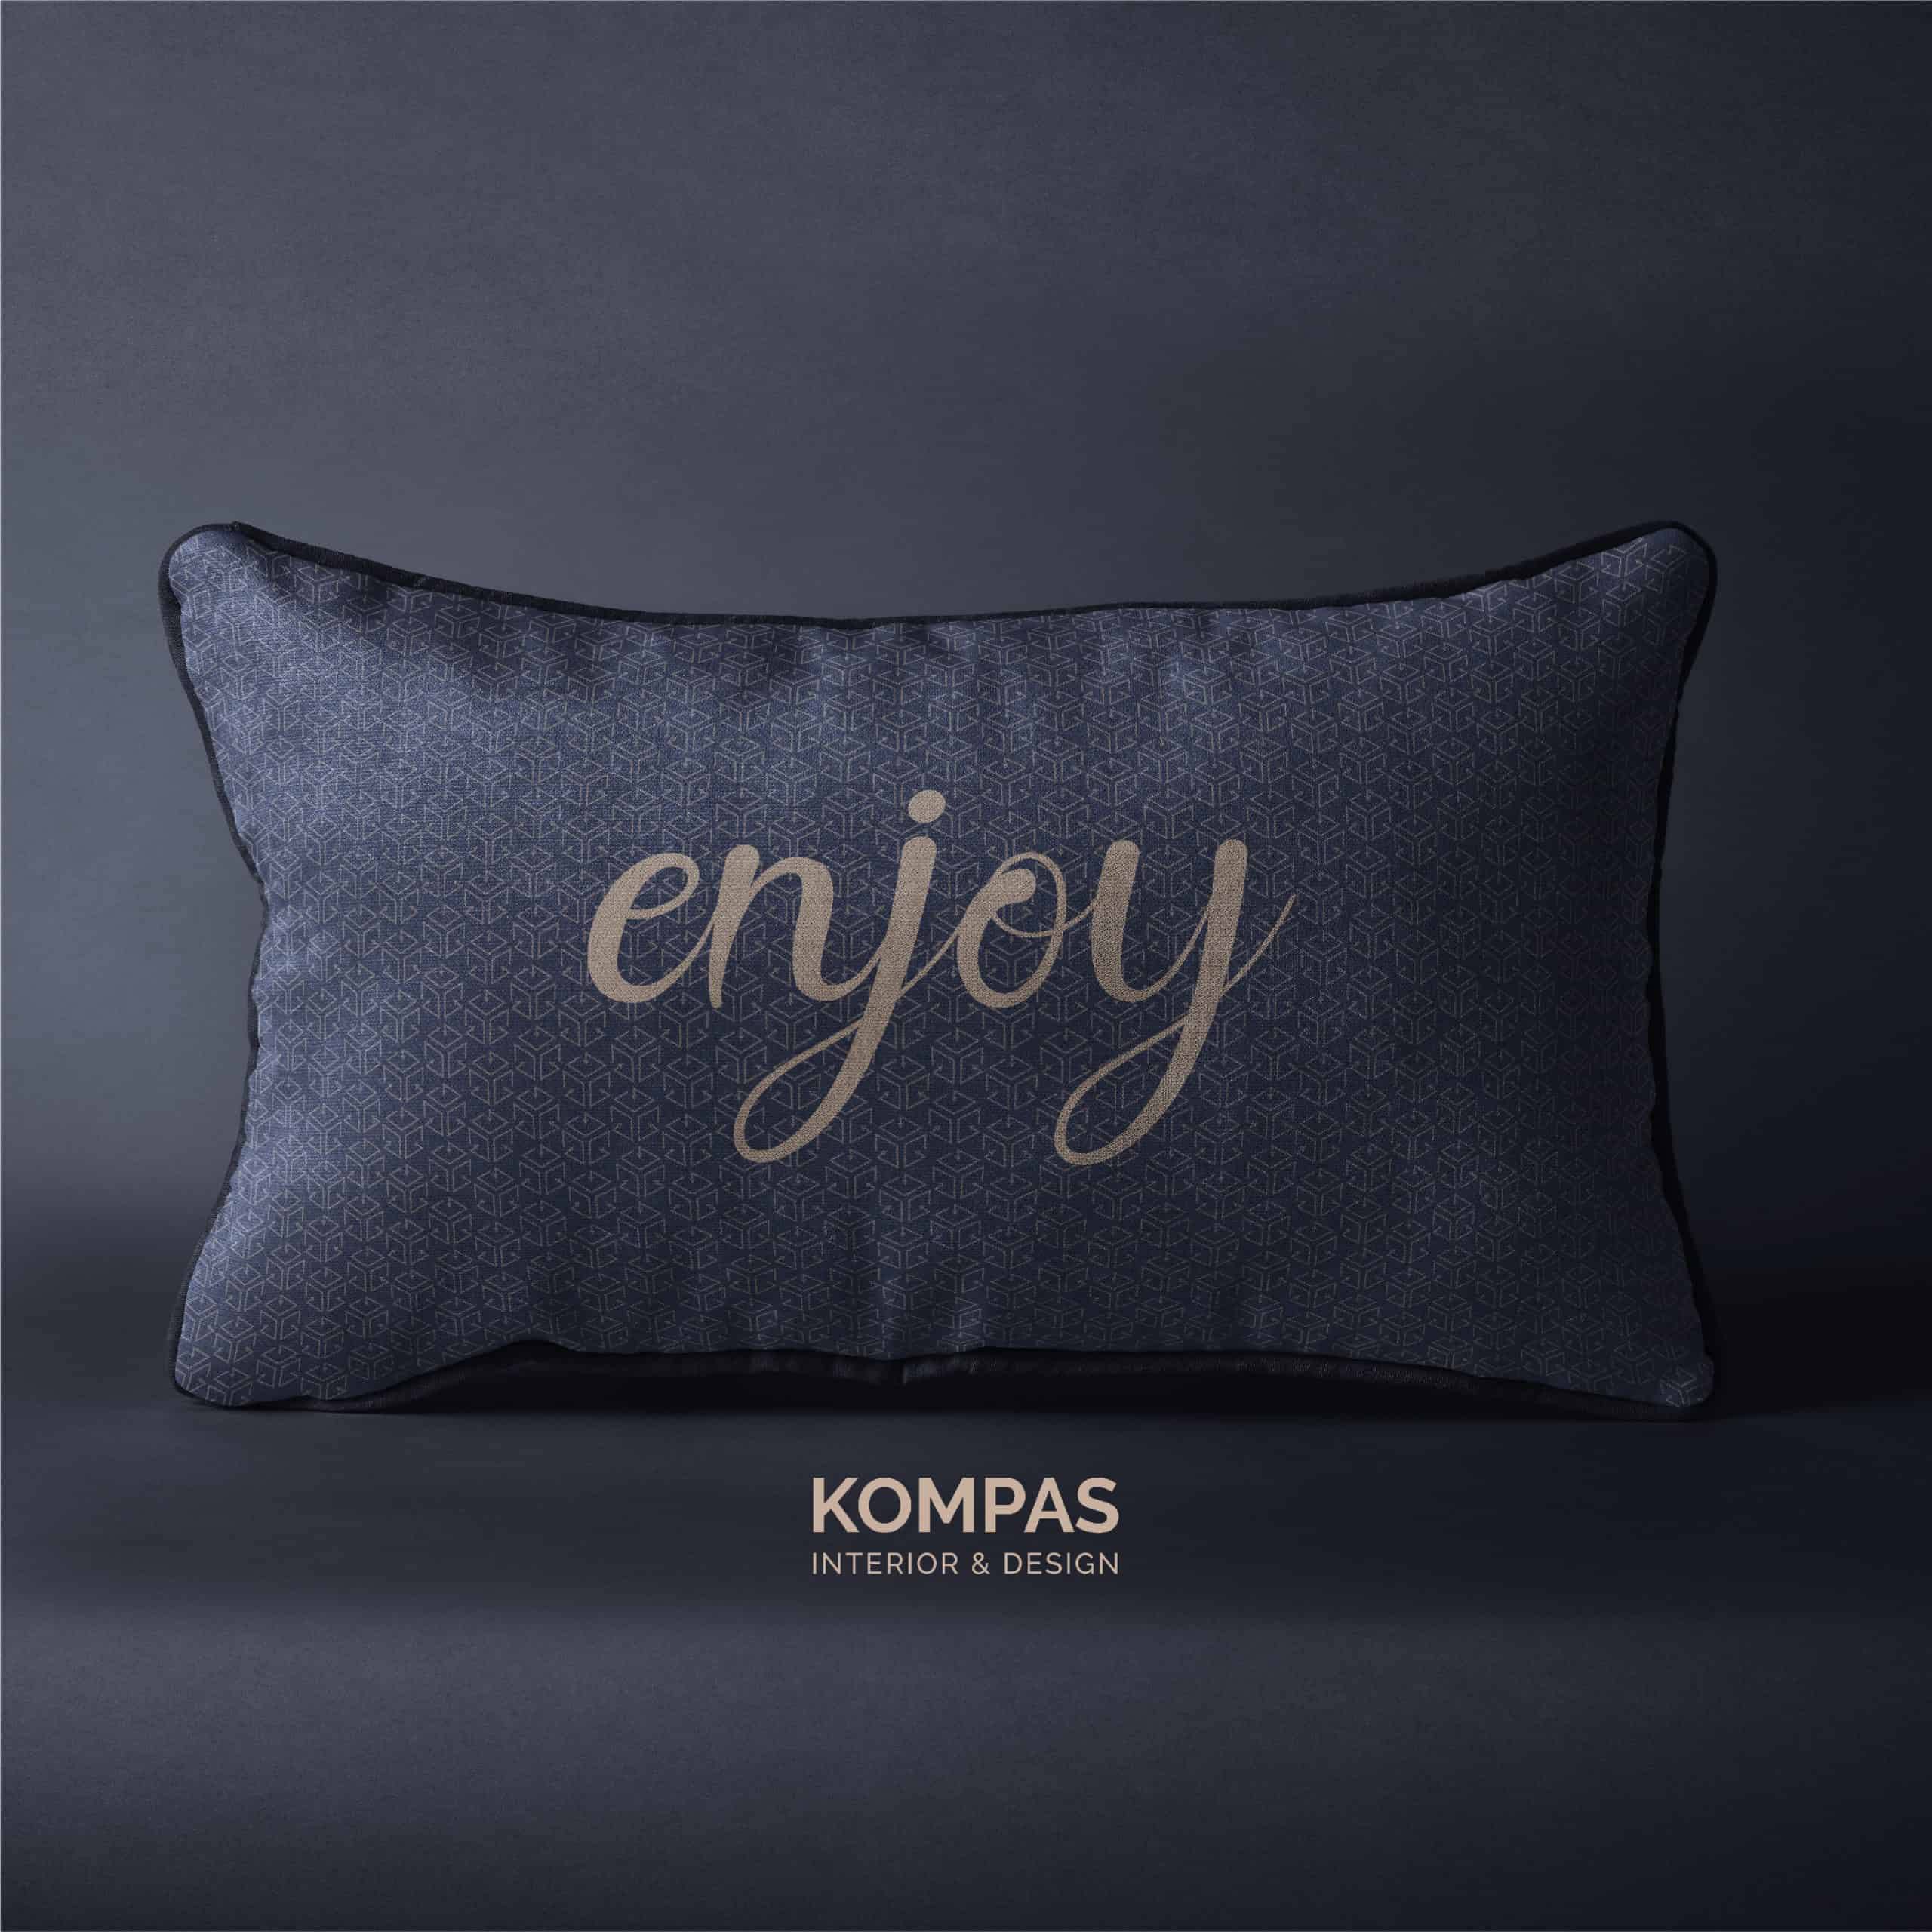 https://horizonplus.eu/project/branding-and-identity-kompas-interior-design/